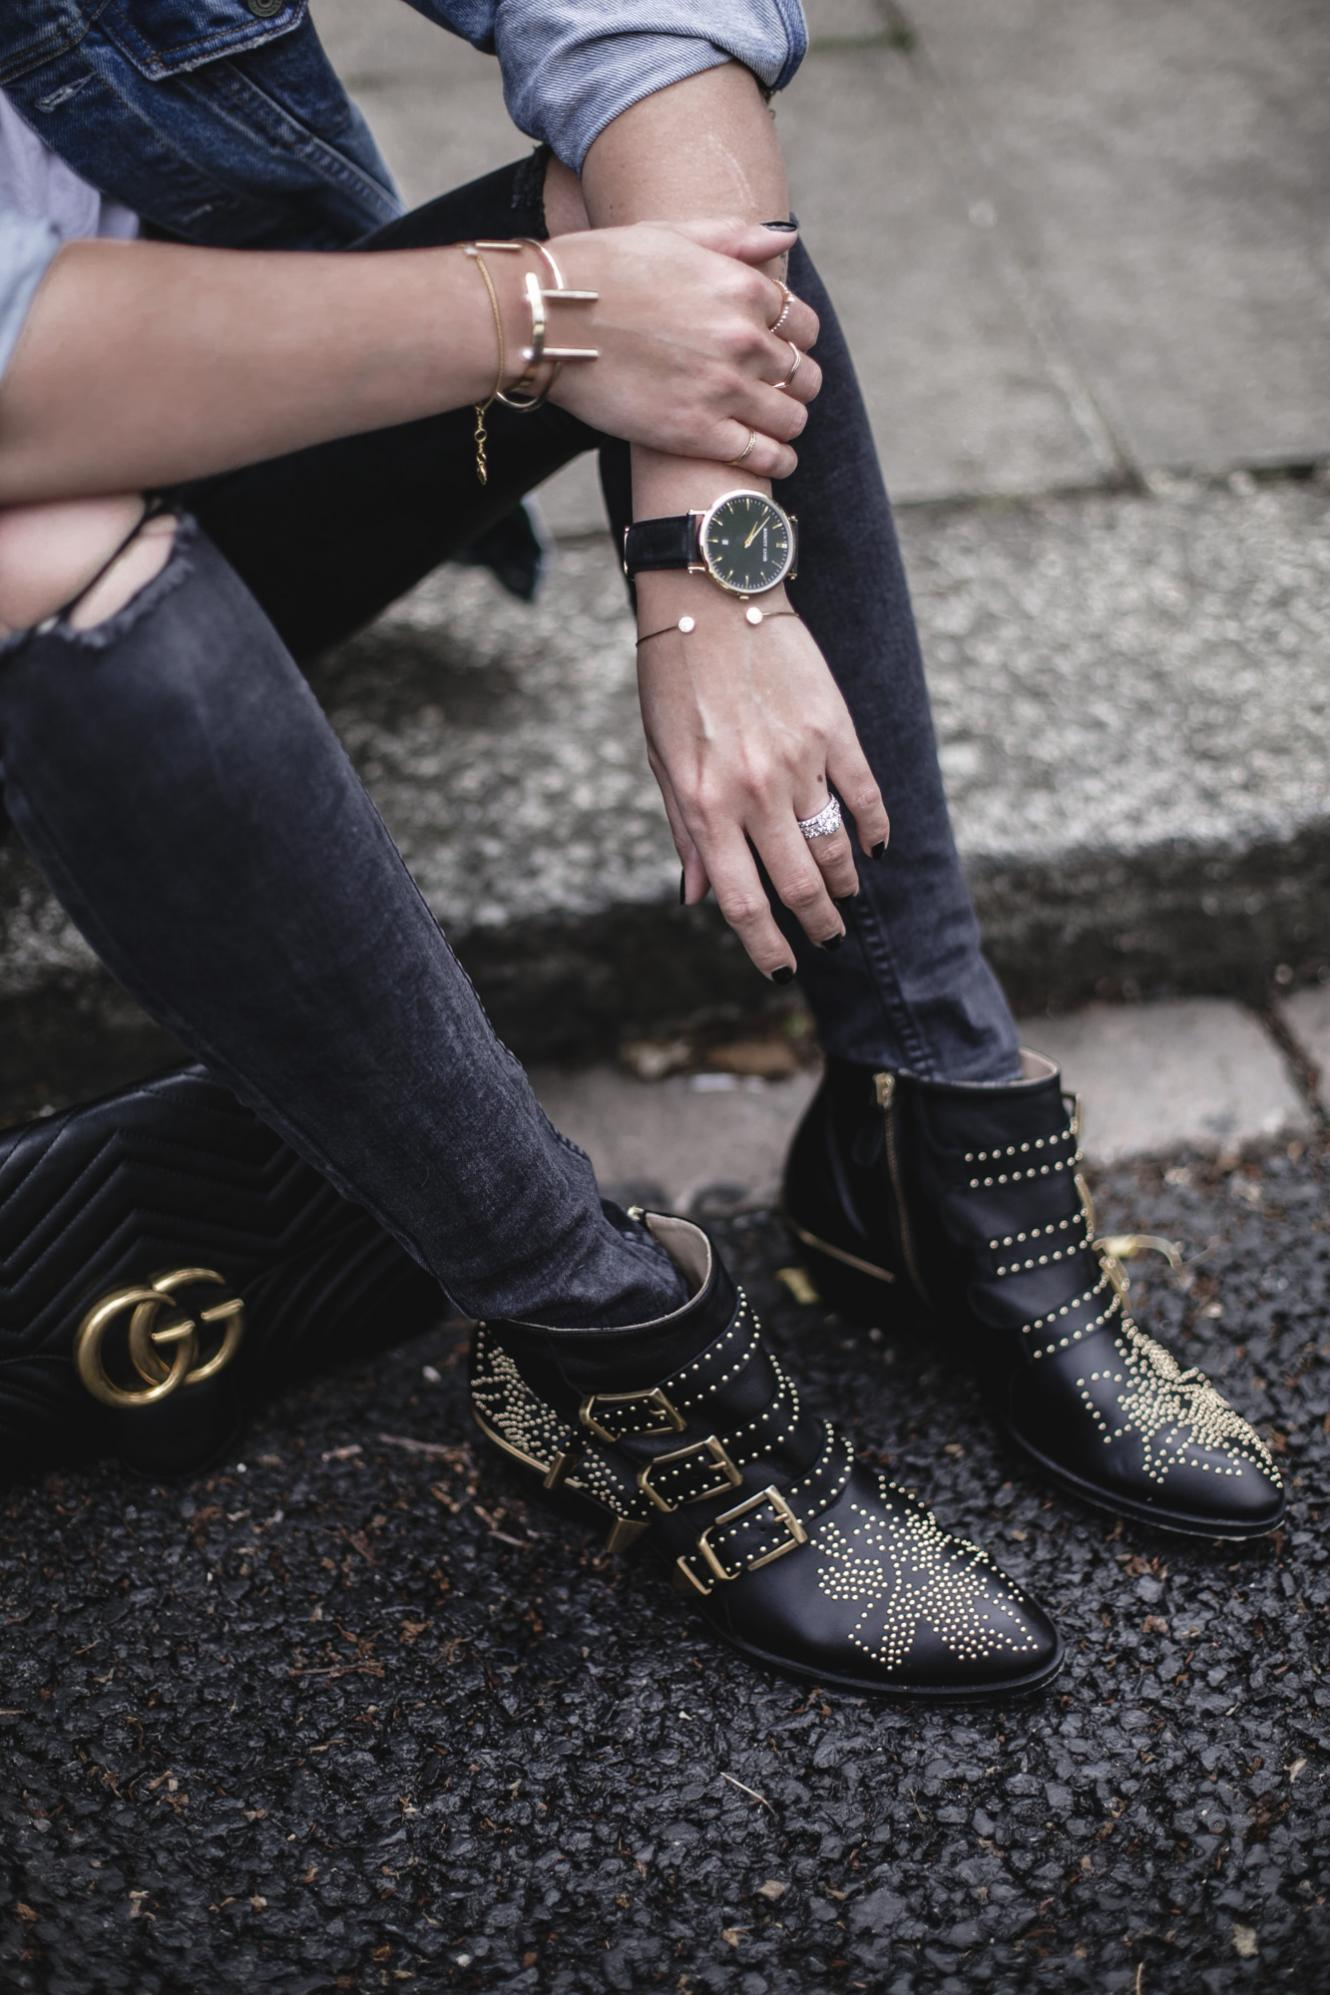 Emma Hill wears black ripped skinny jeans, Chloe Susanna ankle boots, Gucci marmot bag